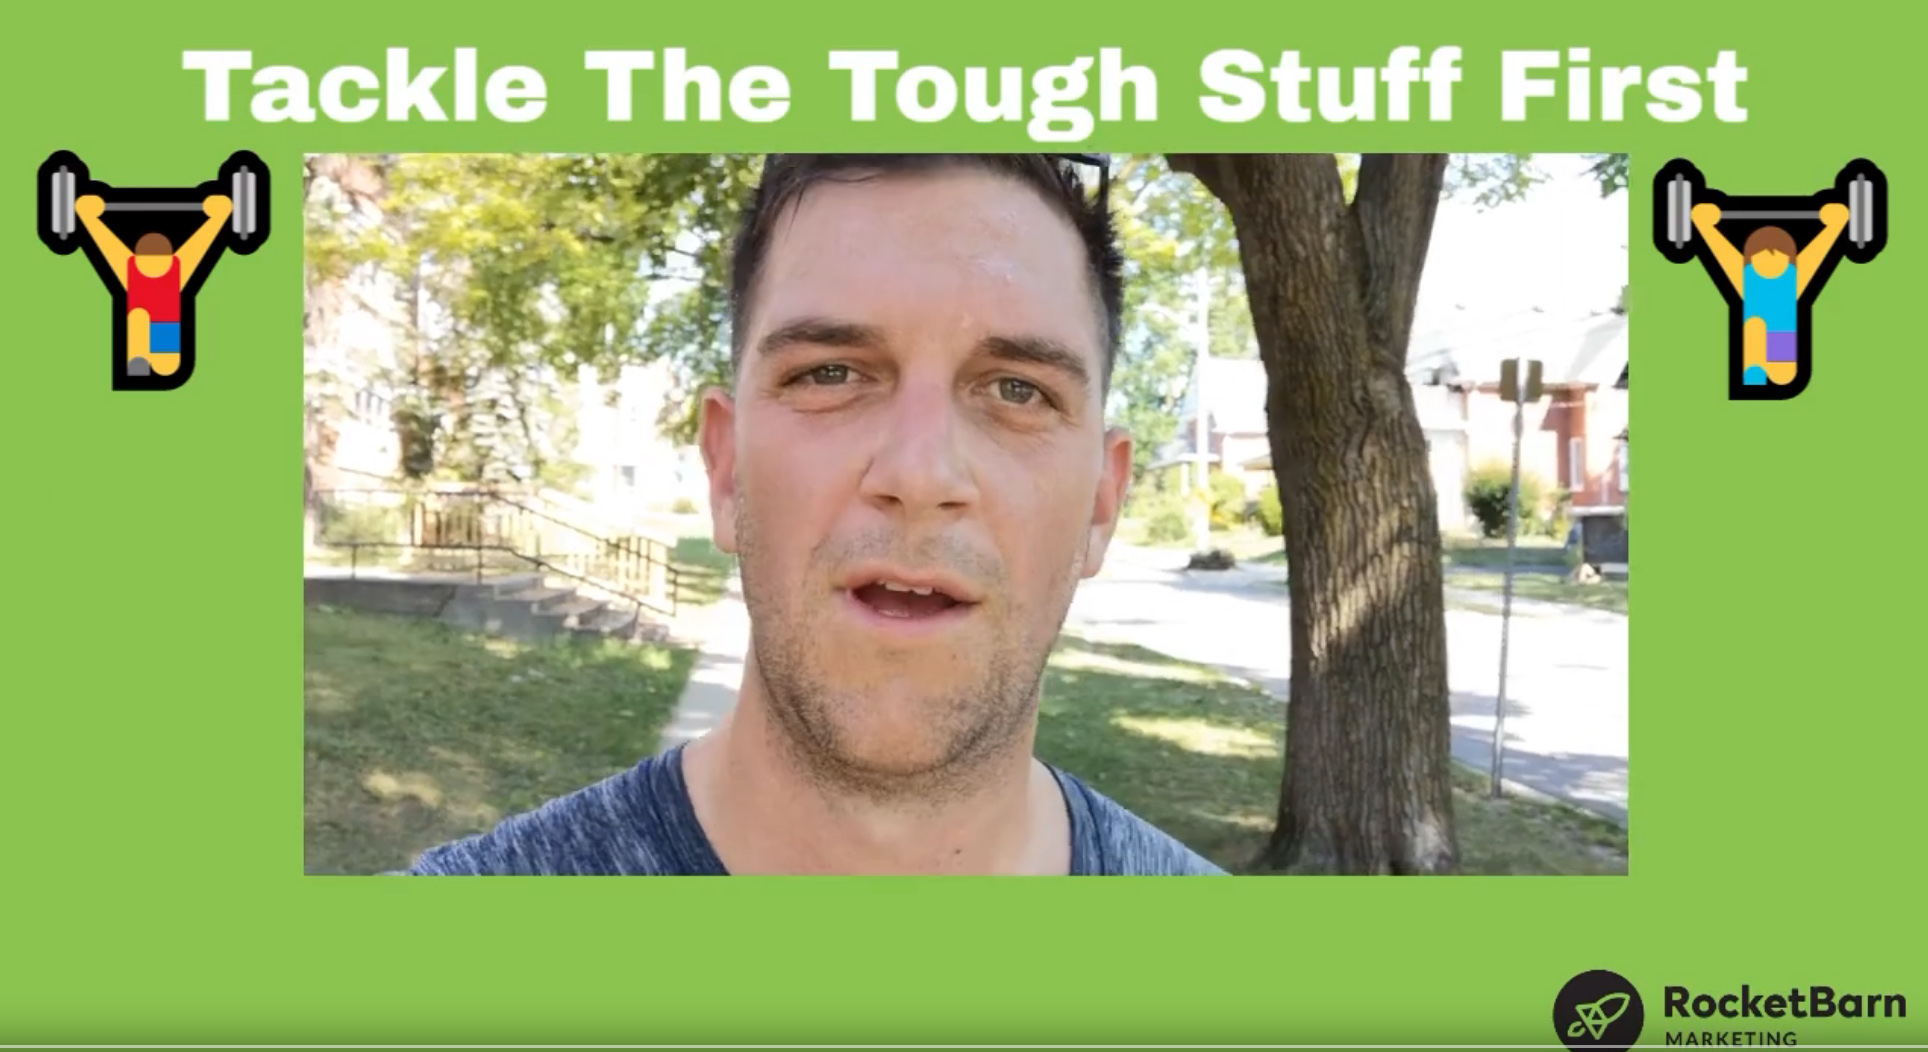 Tackle The Touch Stuff First